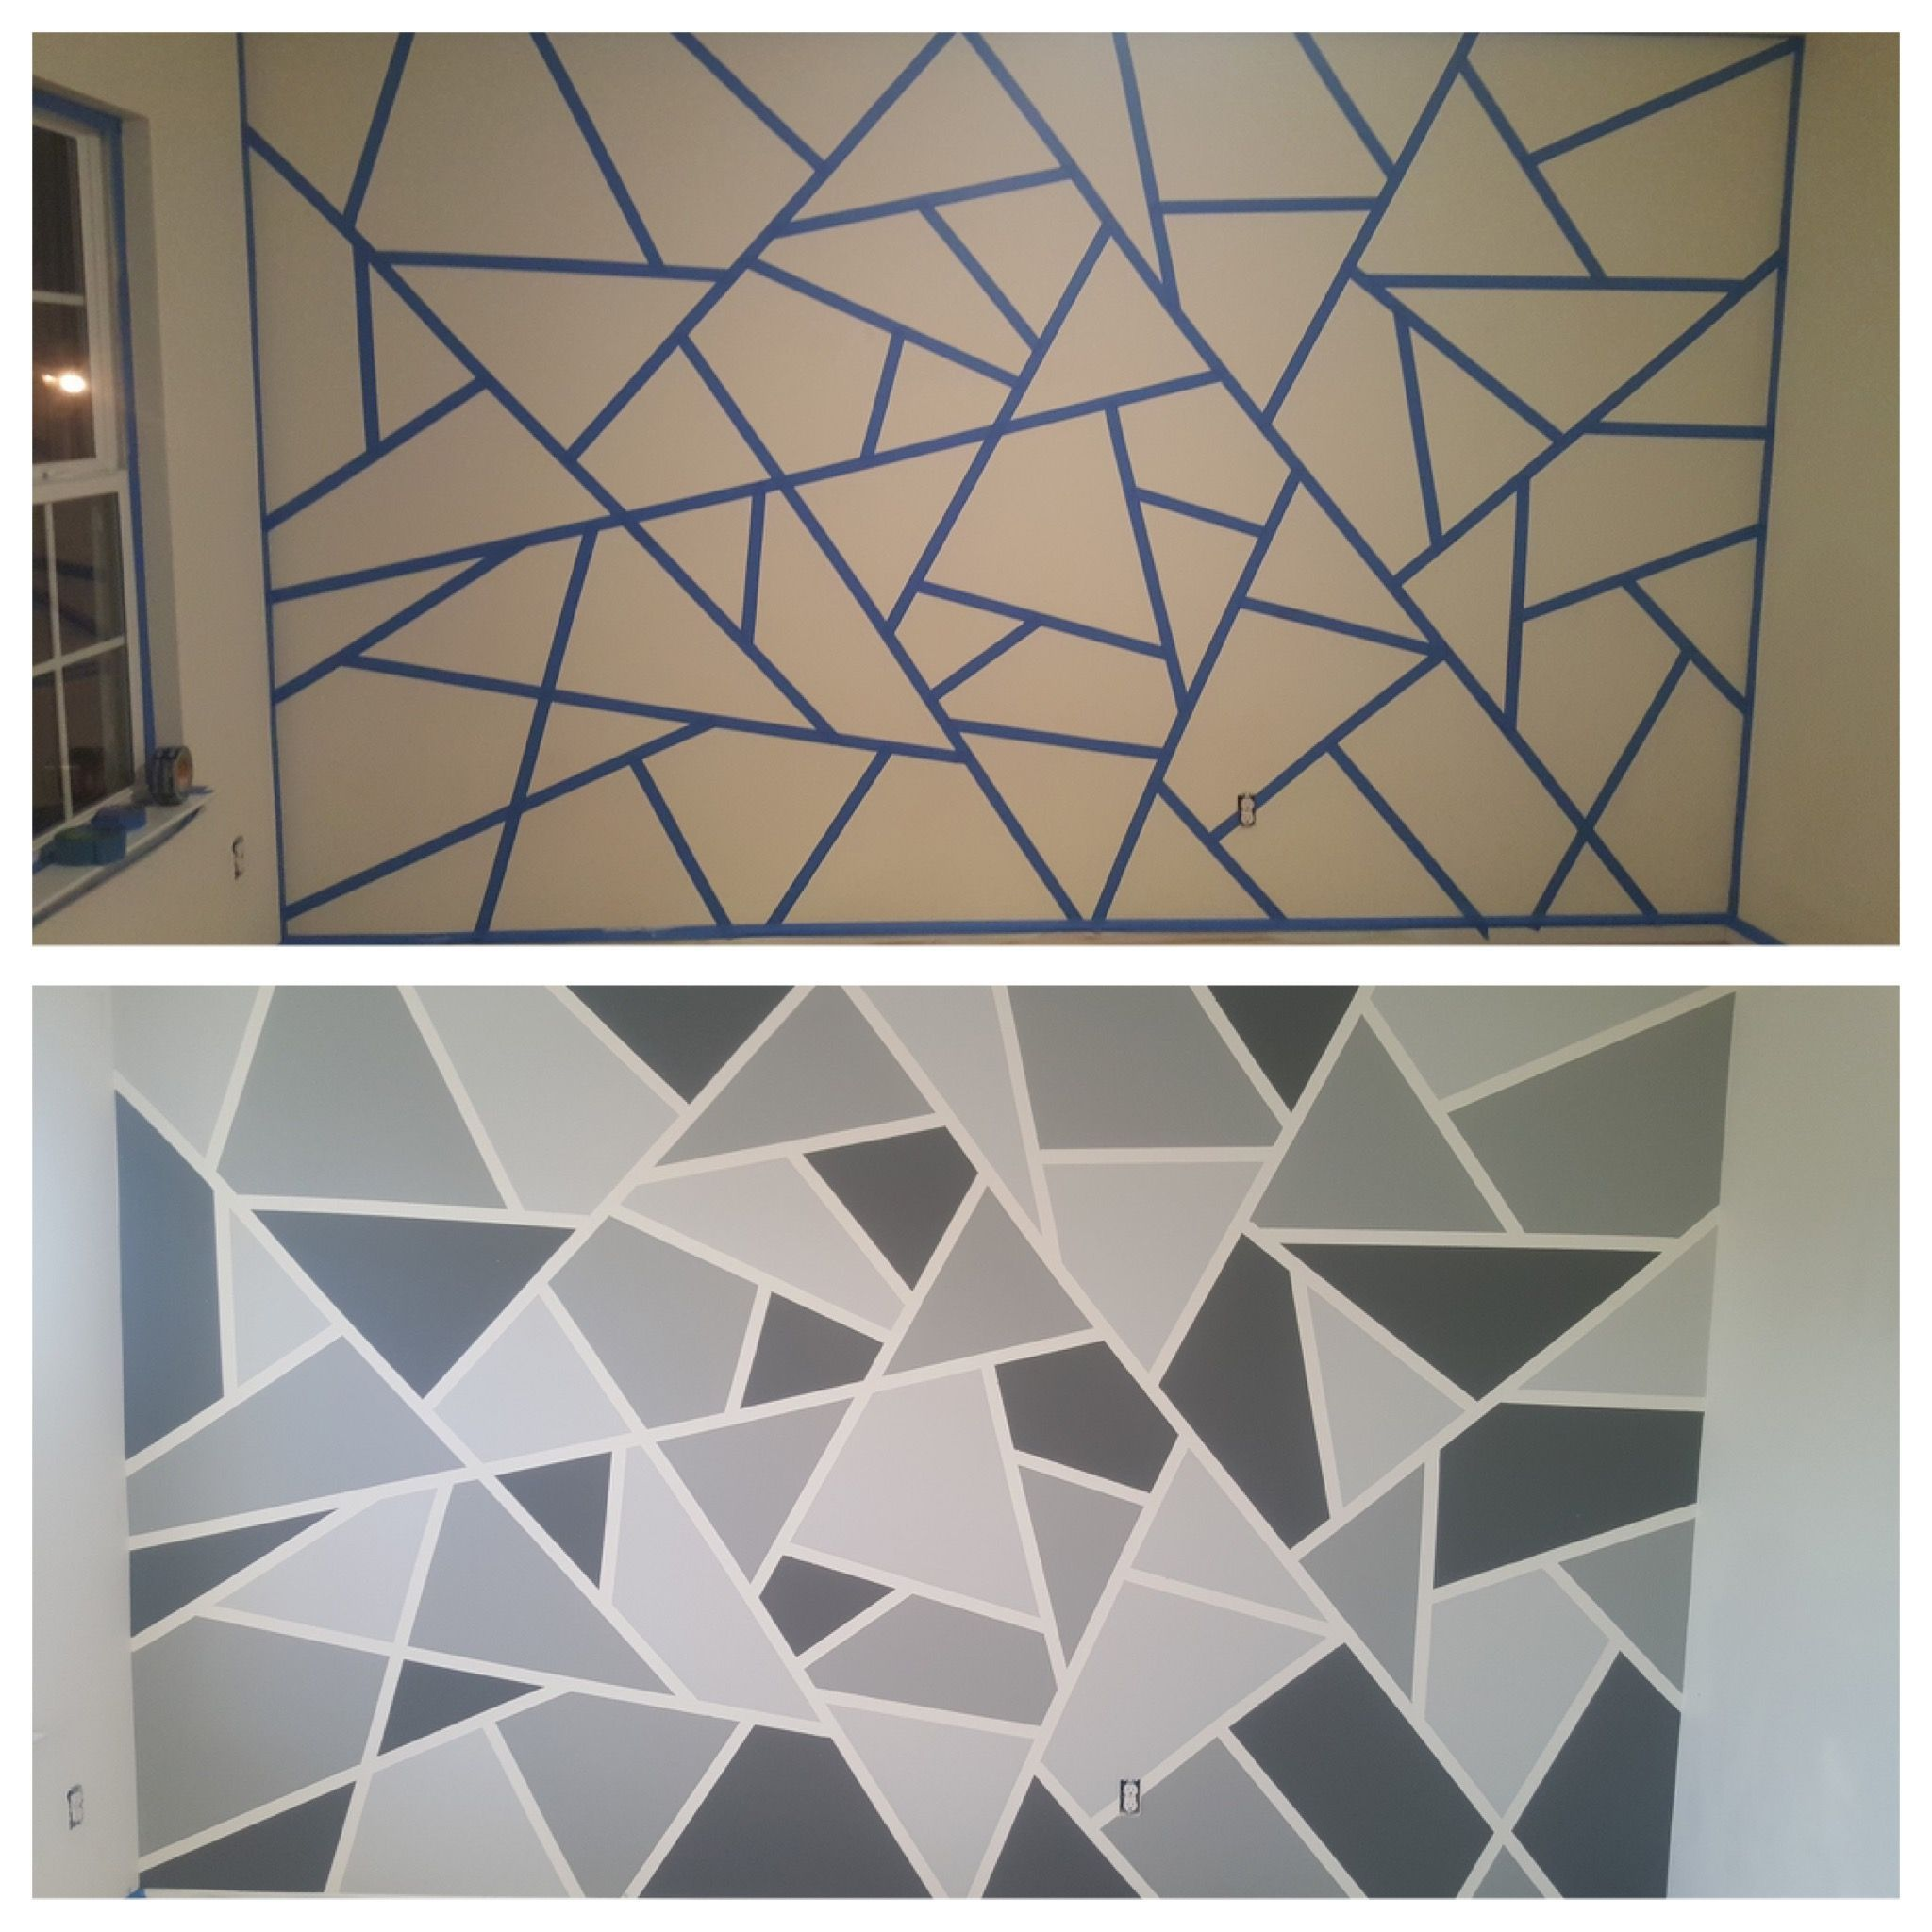 Home Accents Bedroom Geometric Accent Wall Accent 2020